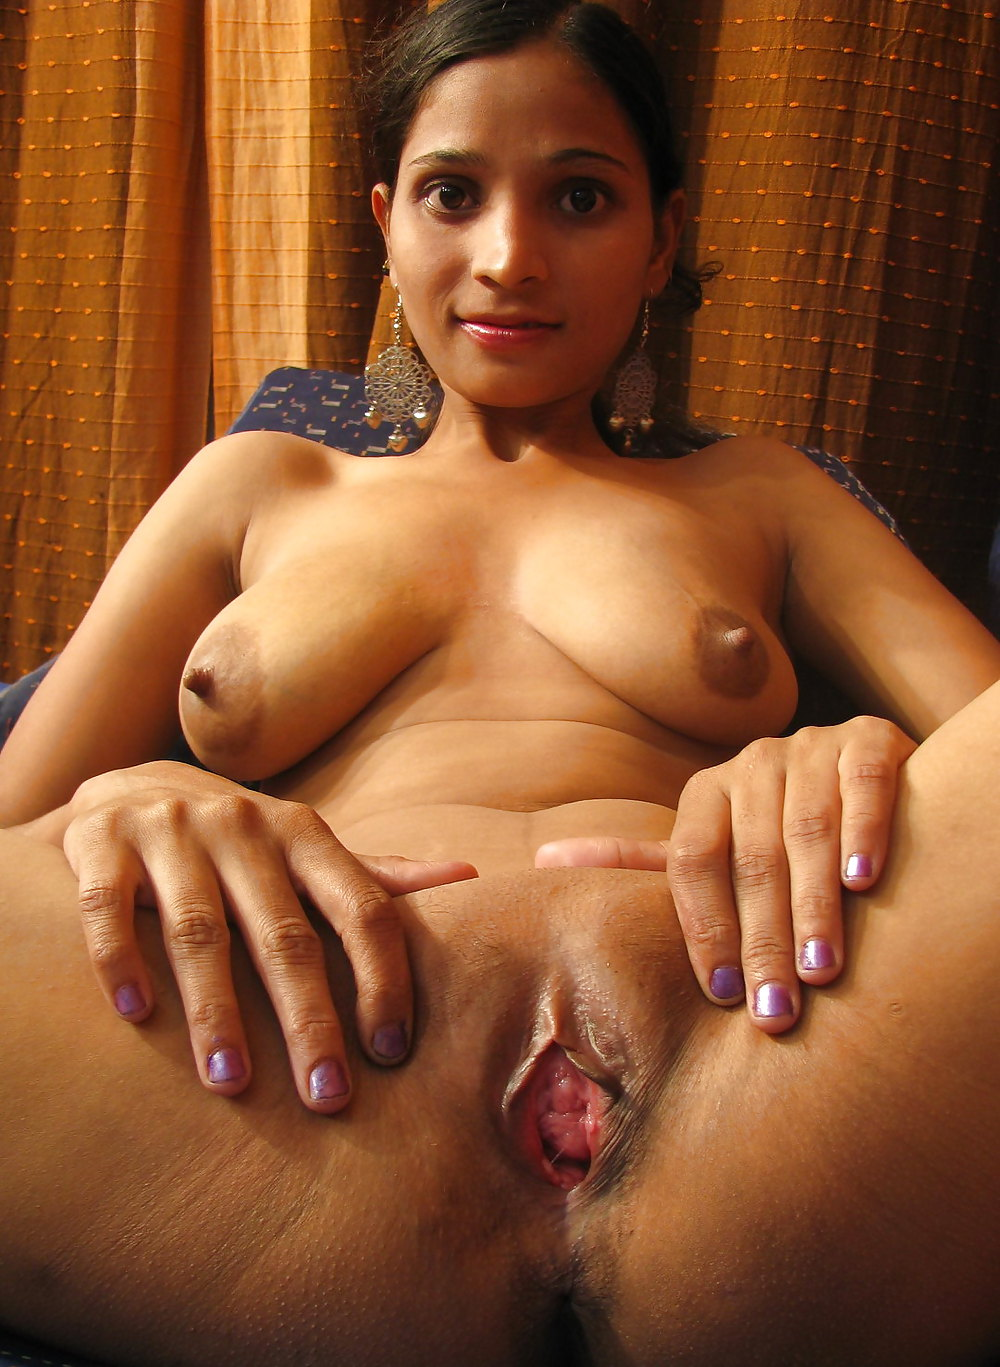 indian-women-shaving-her-vagina-photos